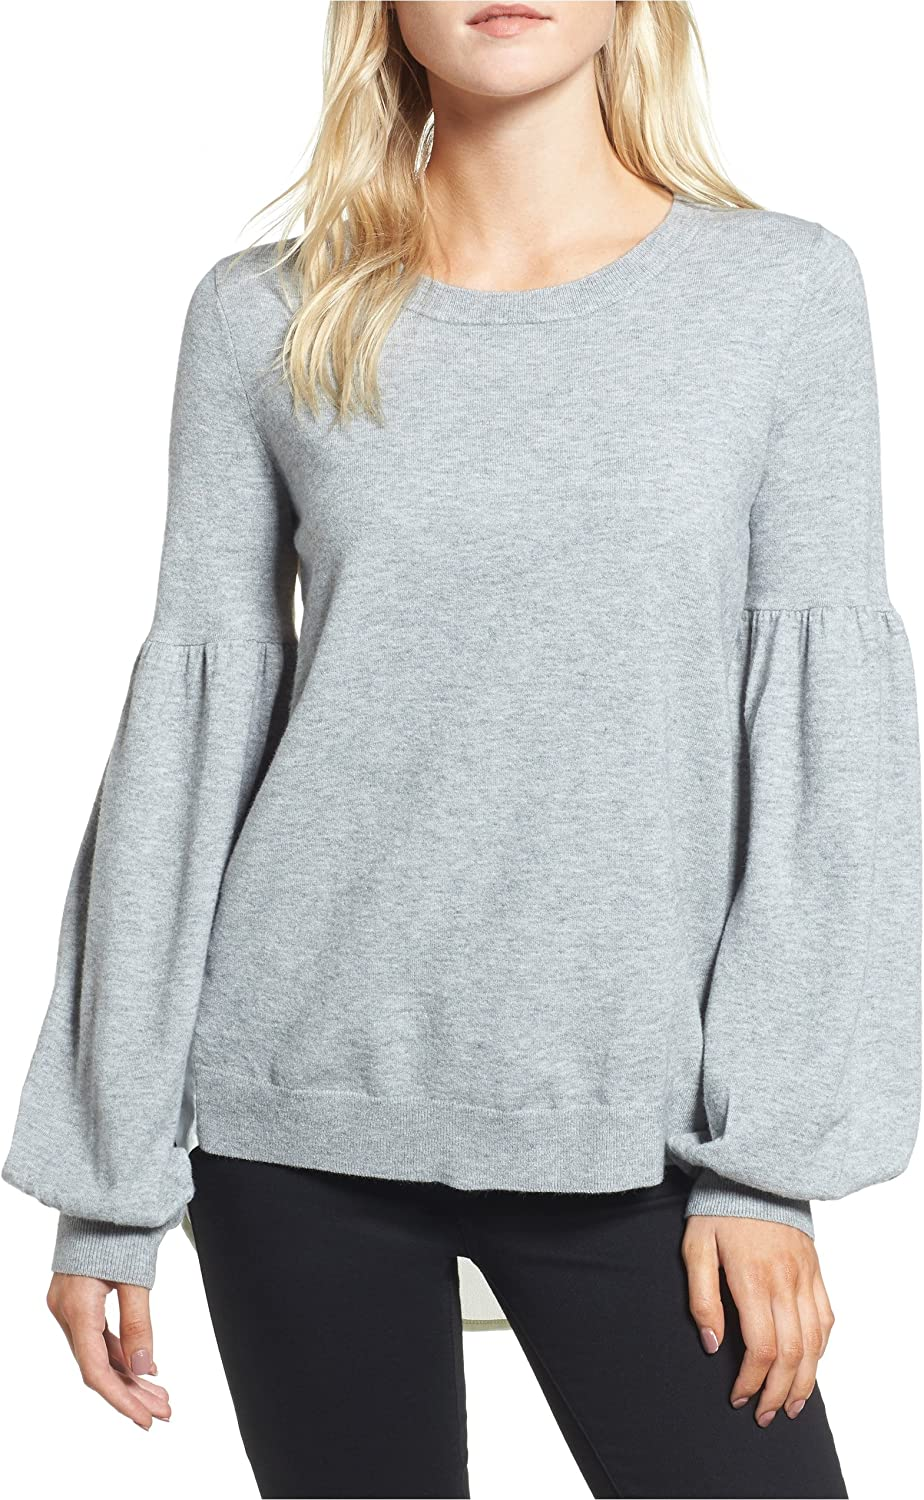 Chelsea28 Woven Back Sweater Grey Heather  Large